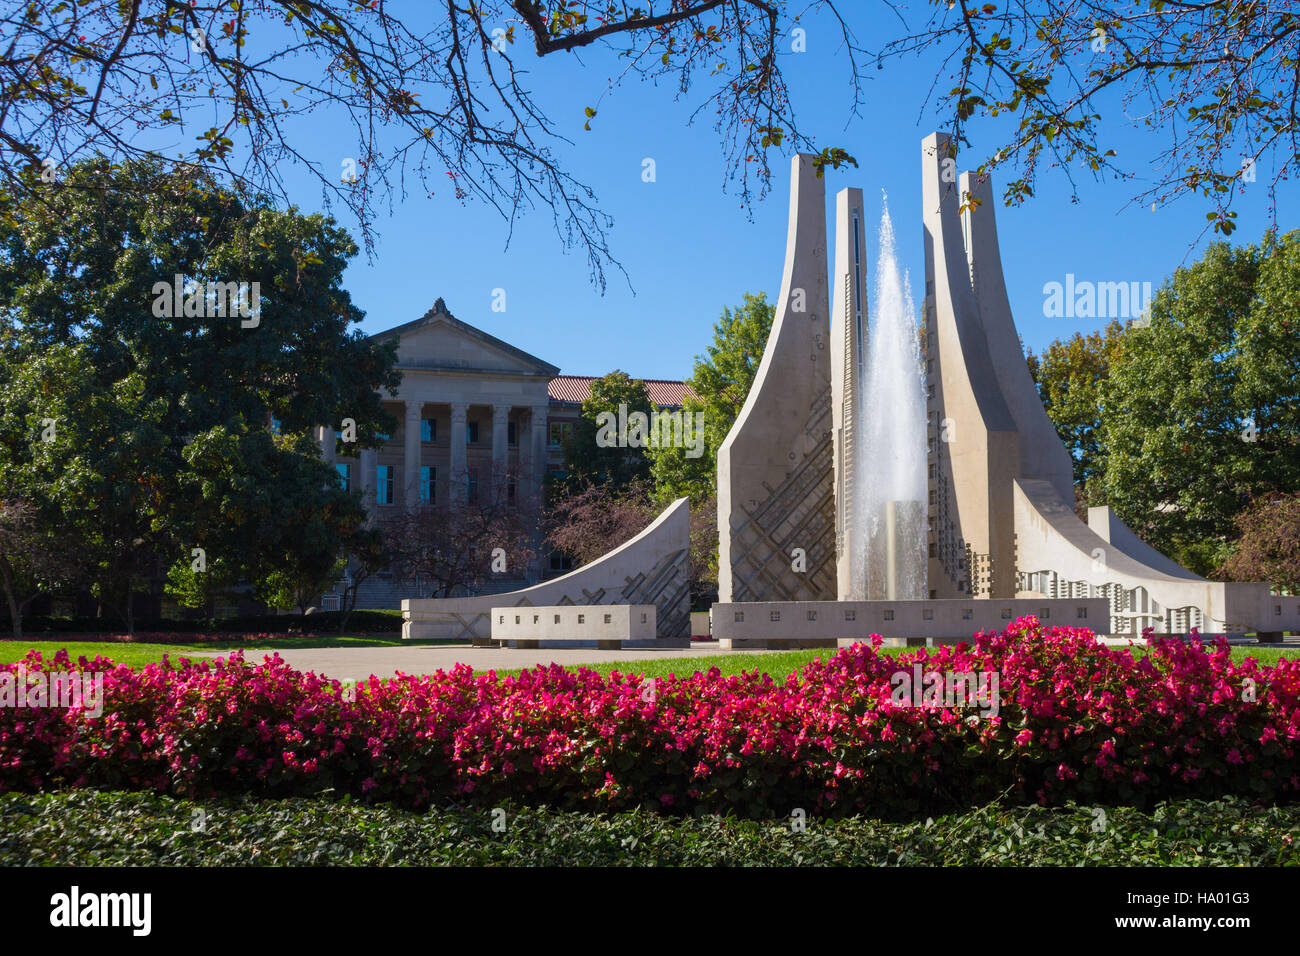 Purdue Engineering Fountain with Hovde Hall in background, Purdue University campus, West Lafayette, Indiana, United - Stock Image